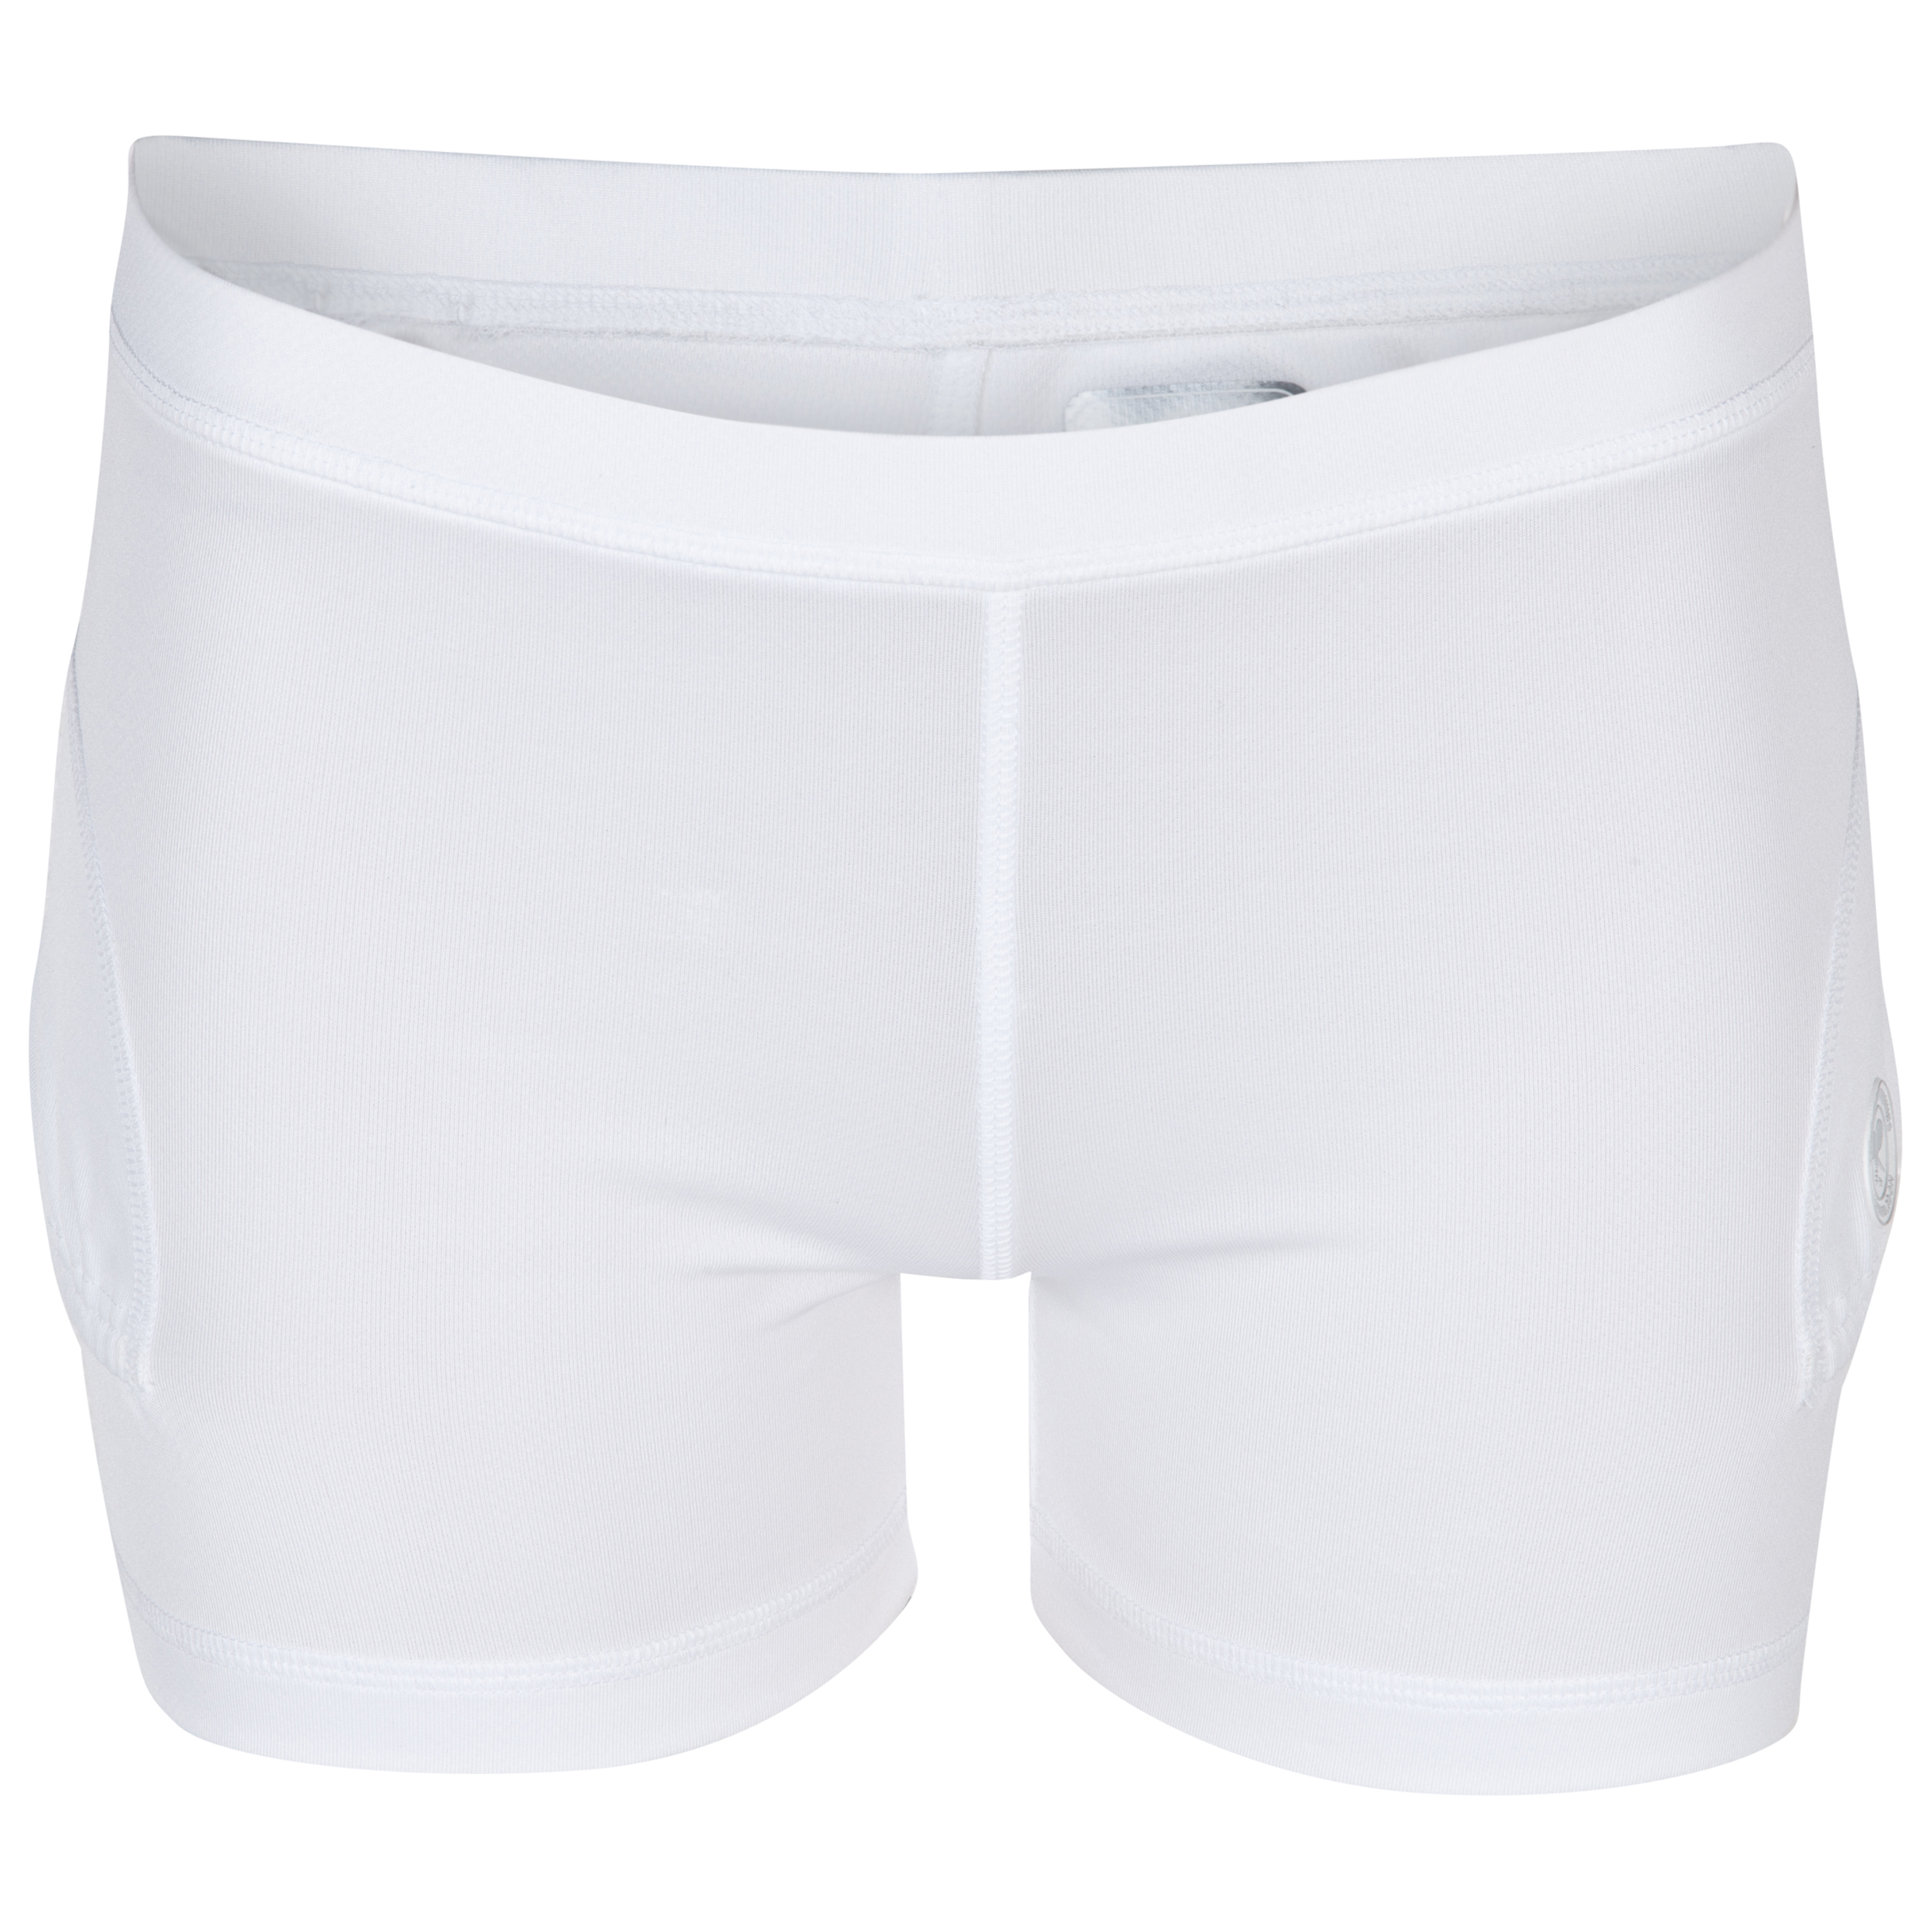 Wimbledon Player Undershort - Ladies - White